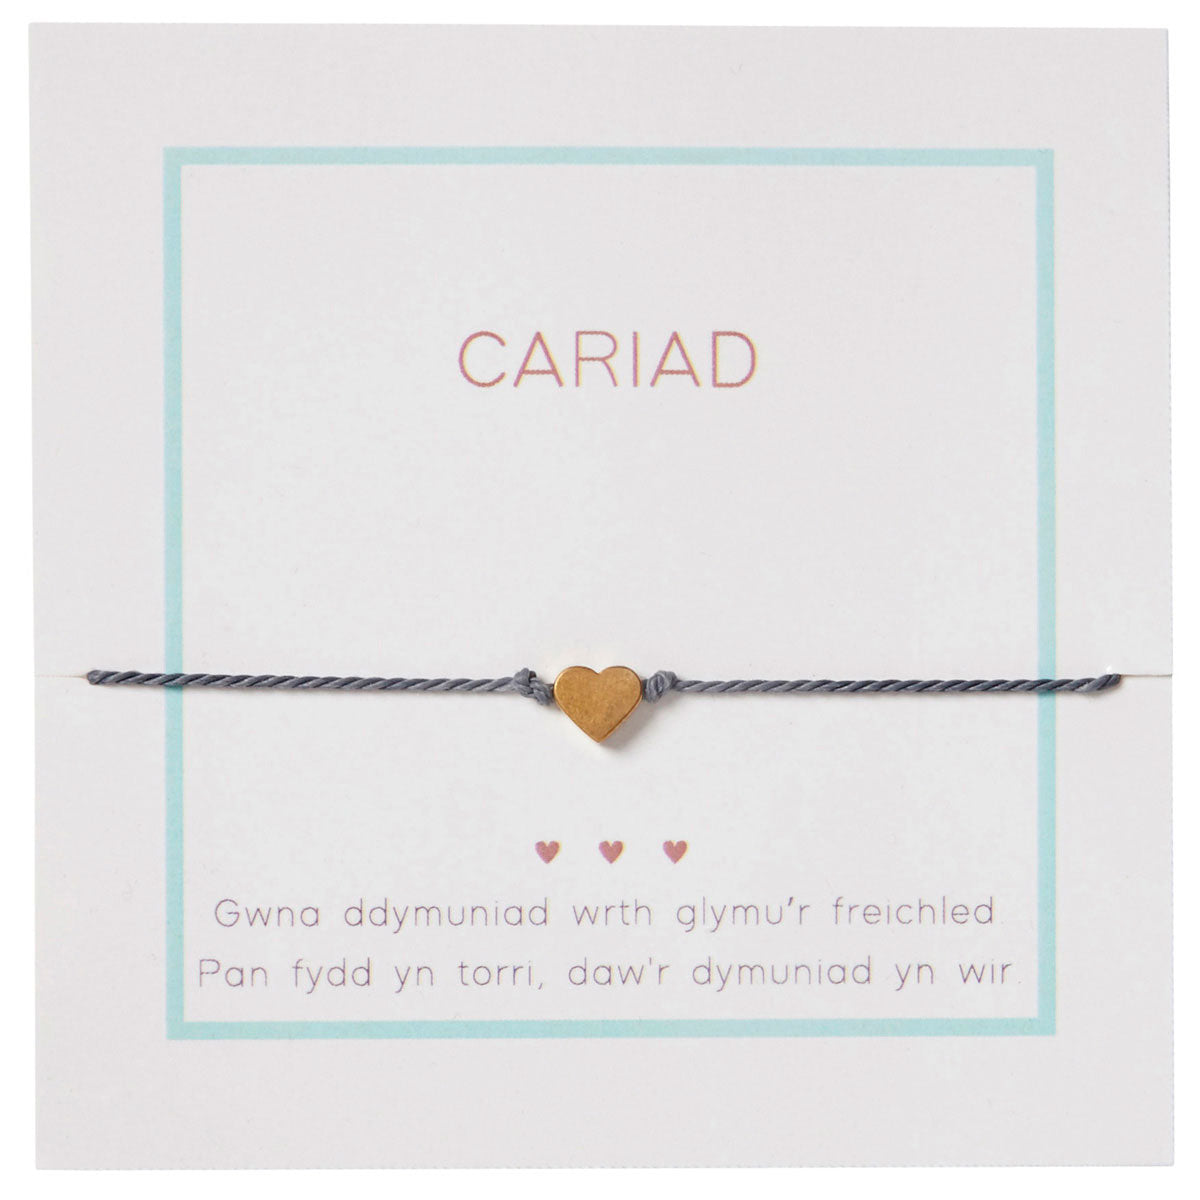 Charm / Friendship Bracelet - Love / Cariad